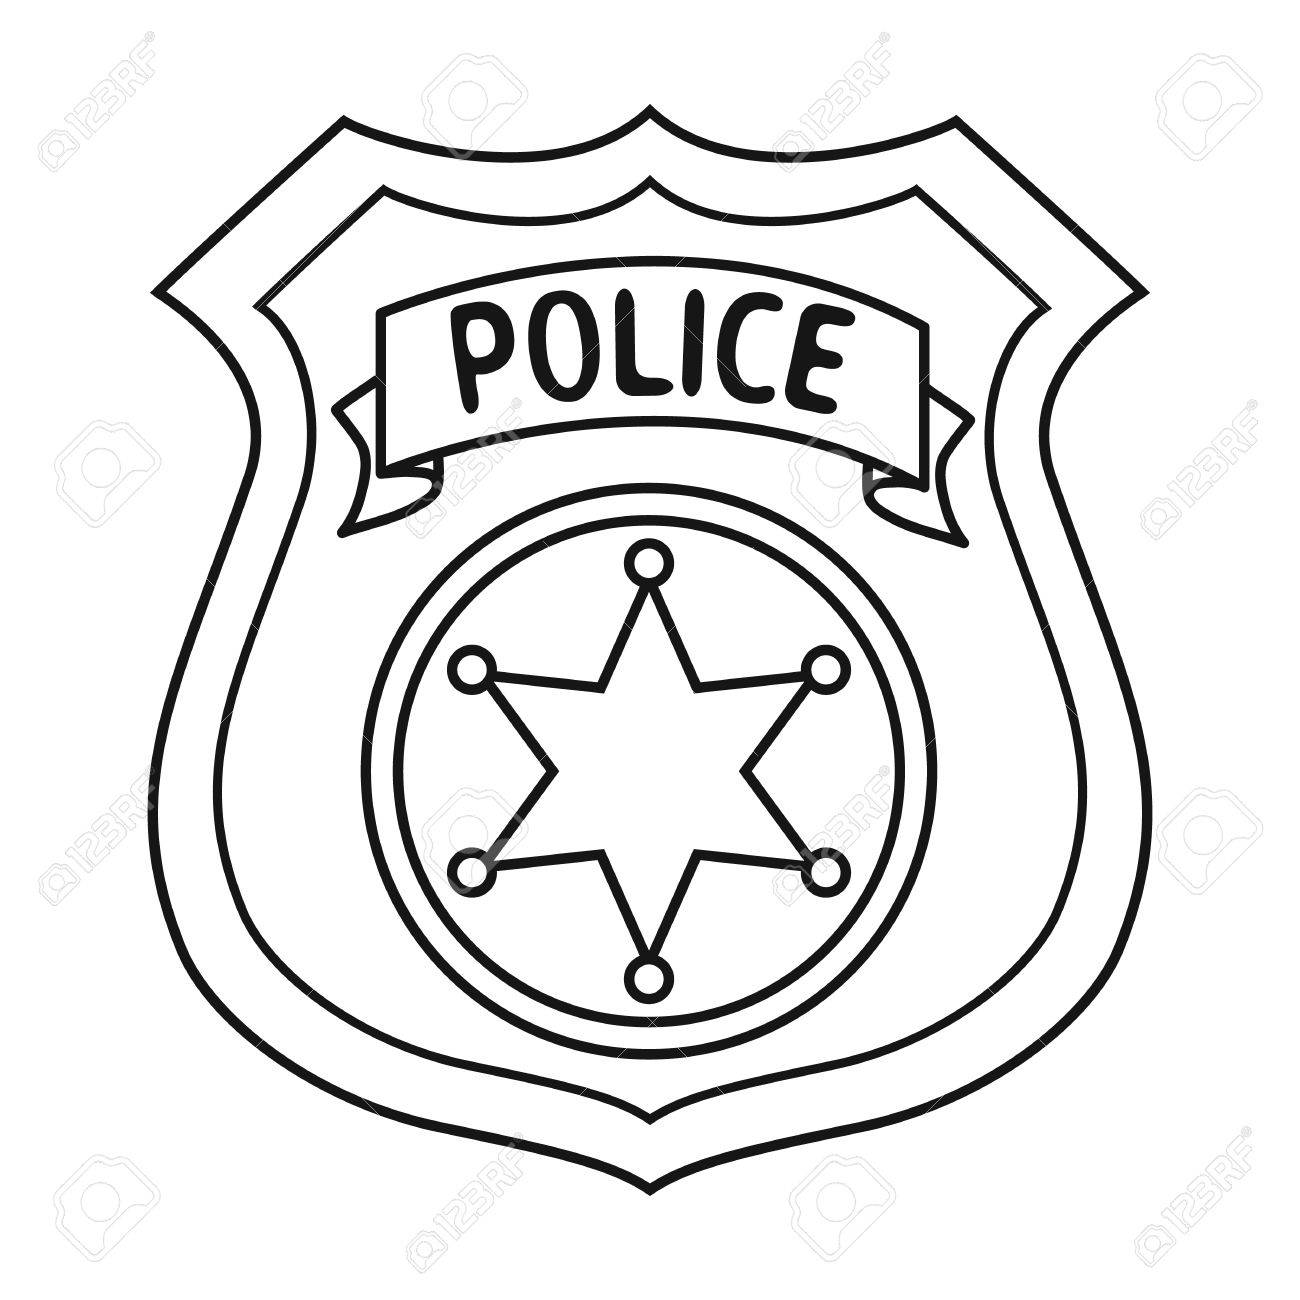 Police badge sheriff. Clipart free download best